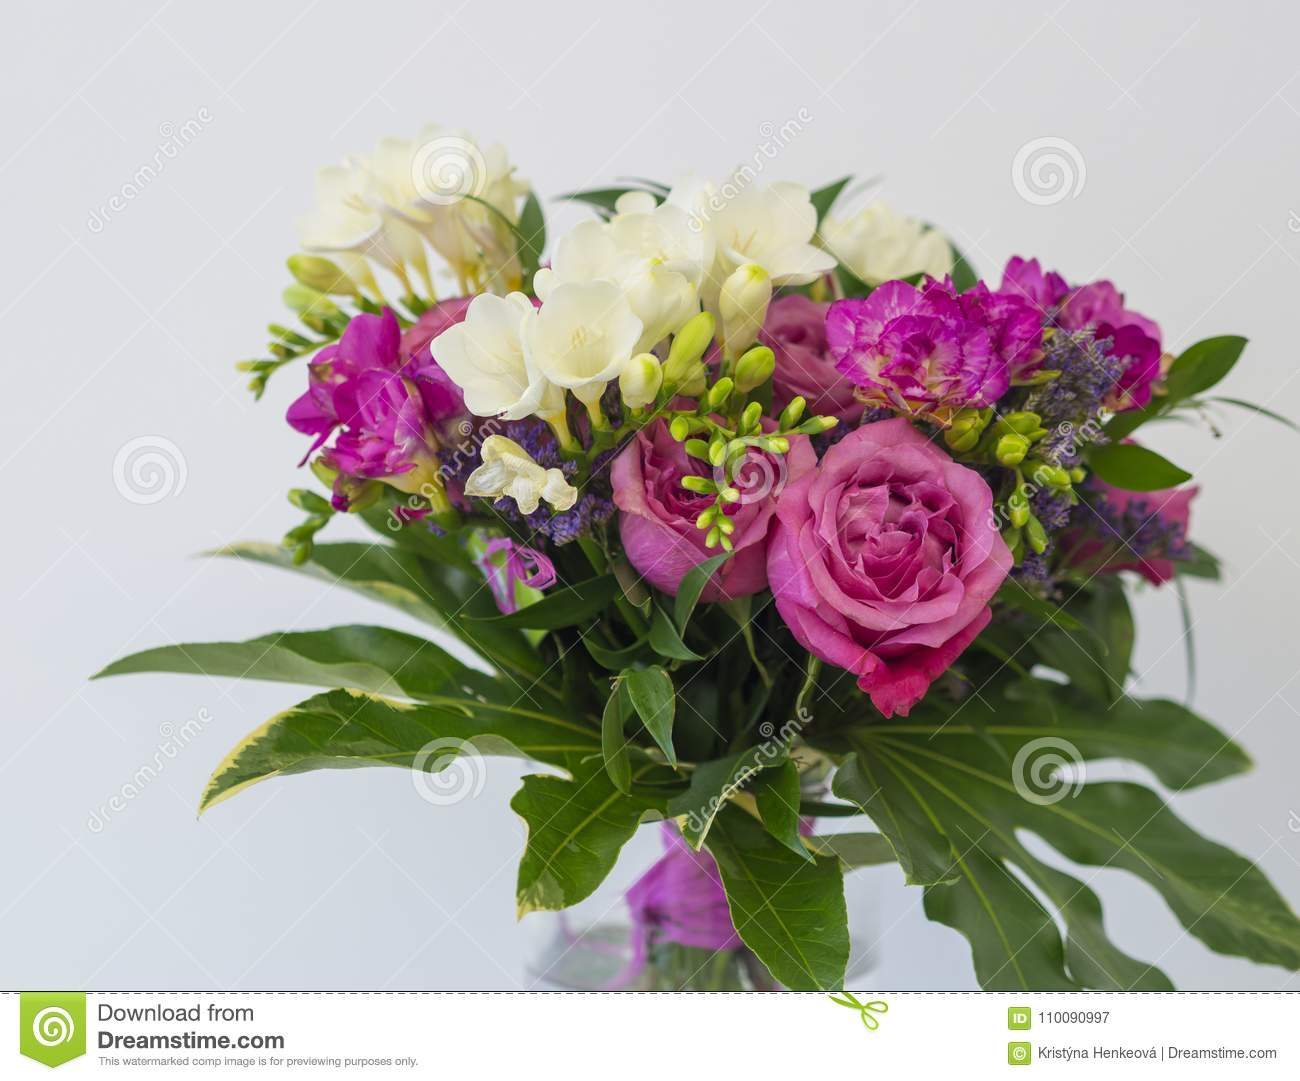 Close up pink rose and white freesia flower bouquet with green l close up pink rose and white freesia flower bouquet with green l izmirmasajfo